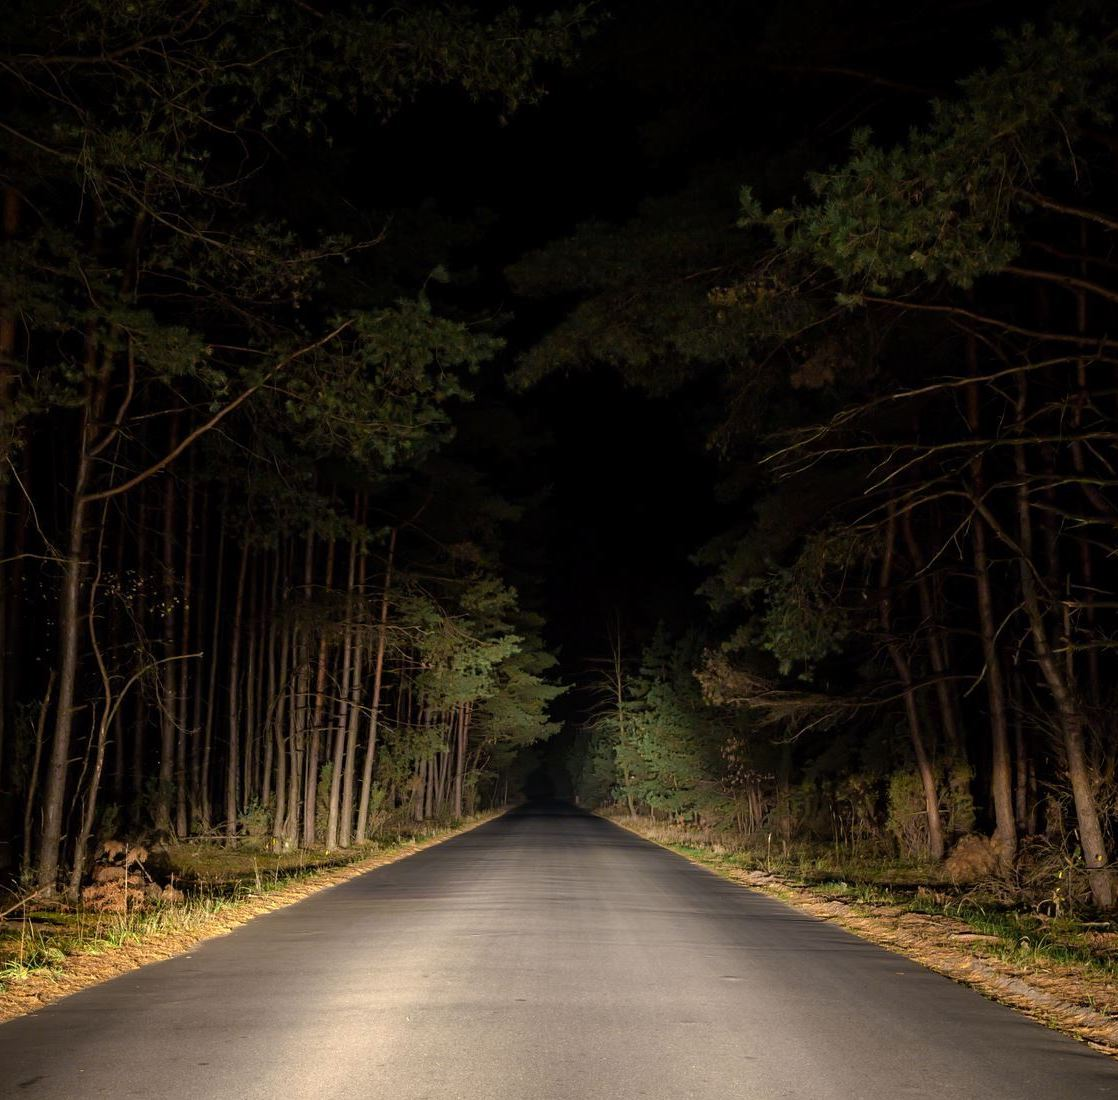 image of road surrounded by tress in the dark Opens in new window